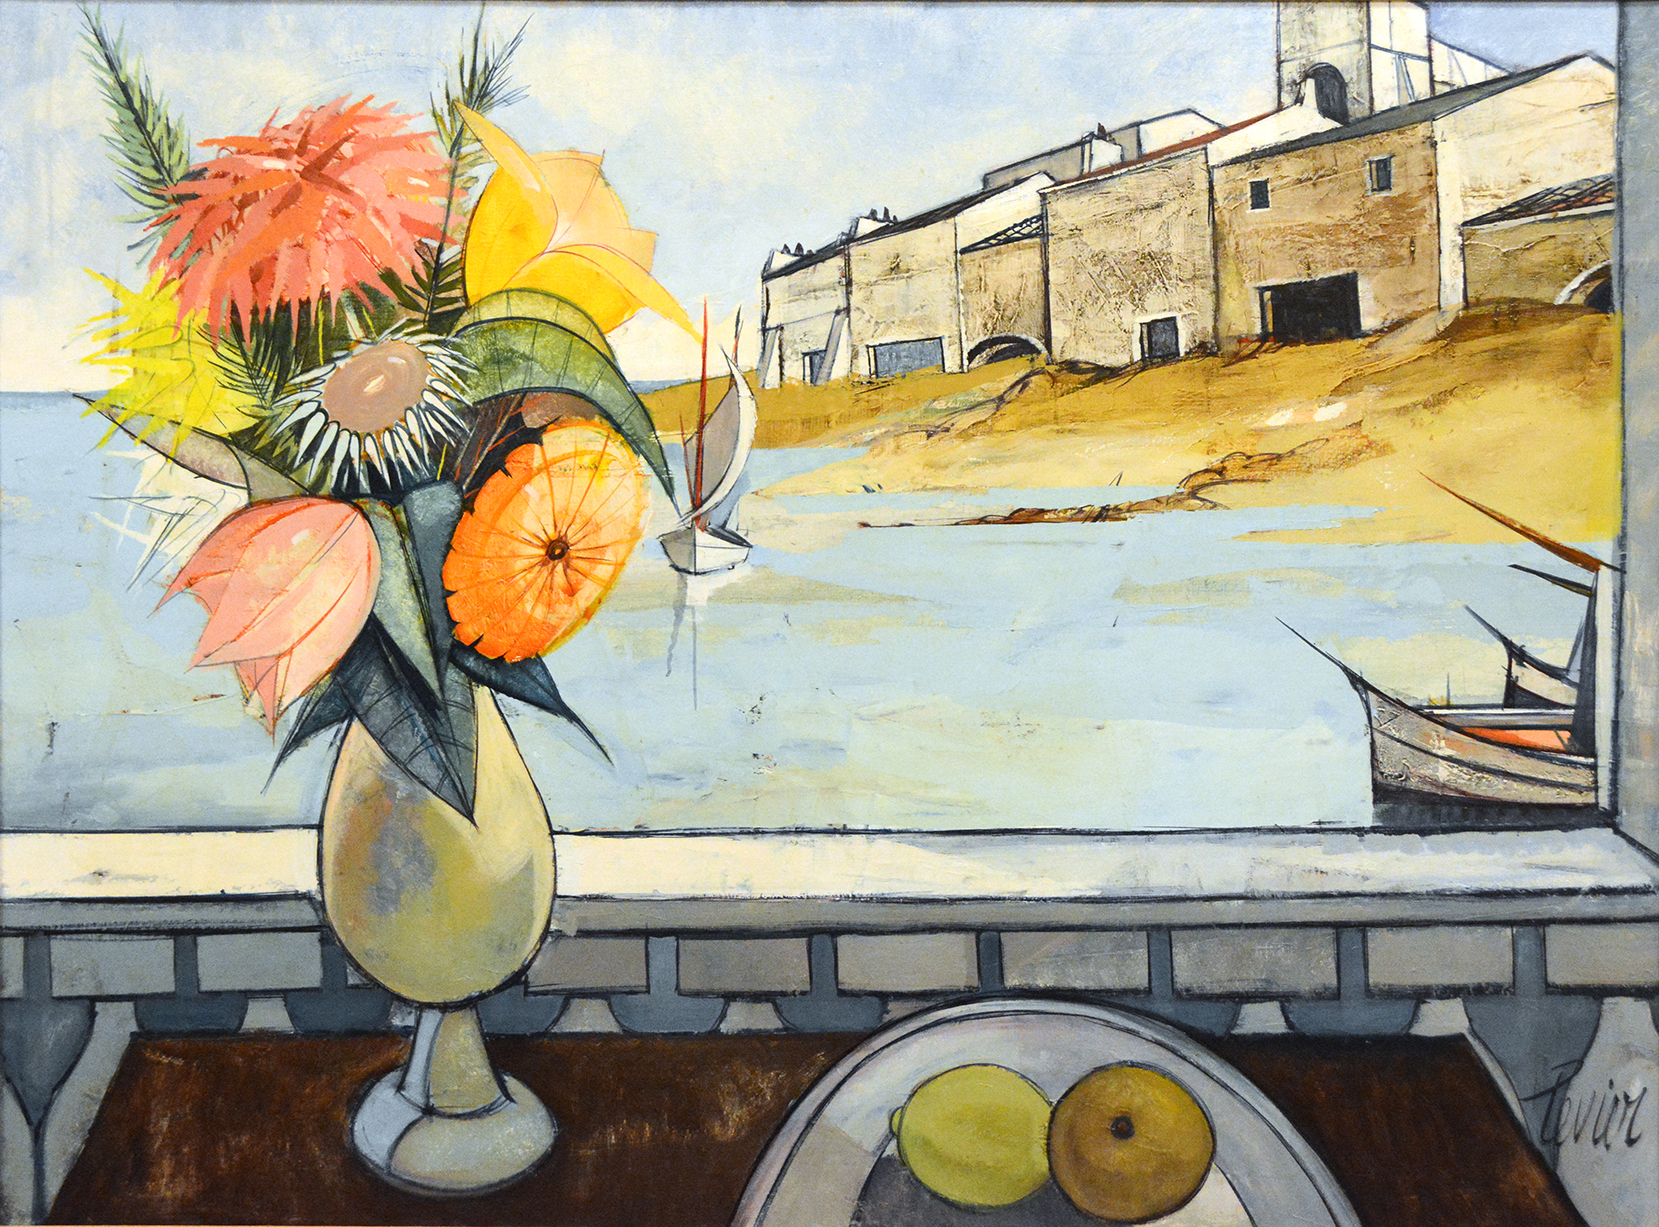 Port de Peche (Still Life & Harbor)